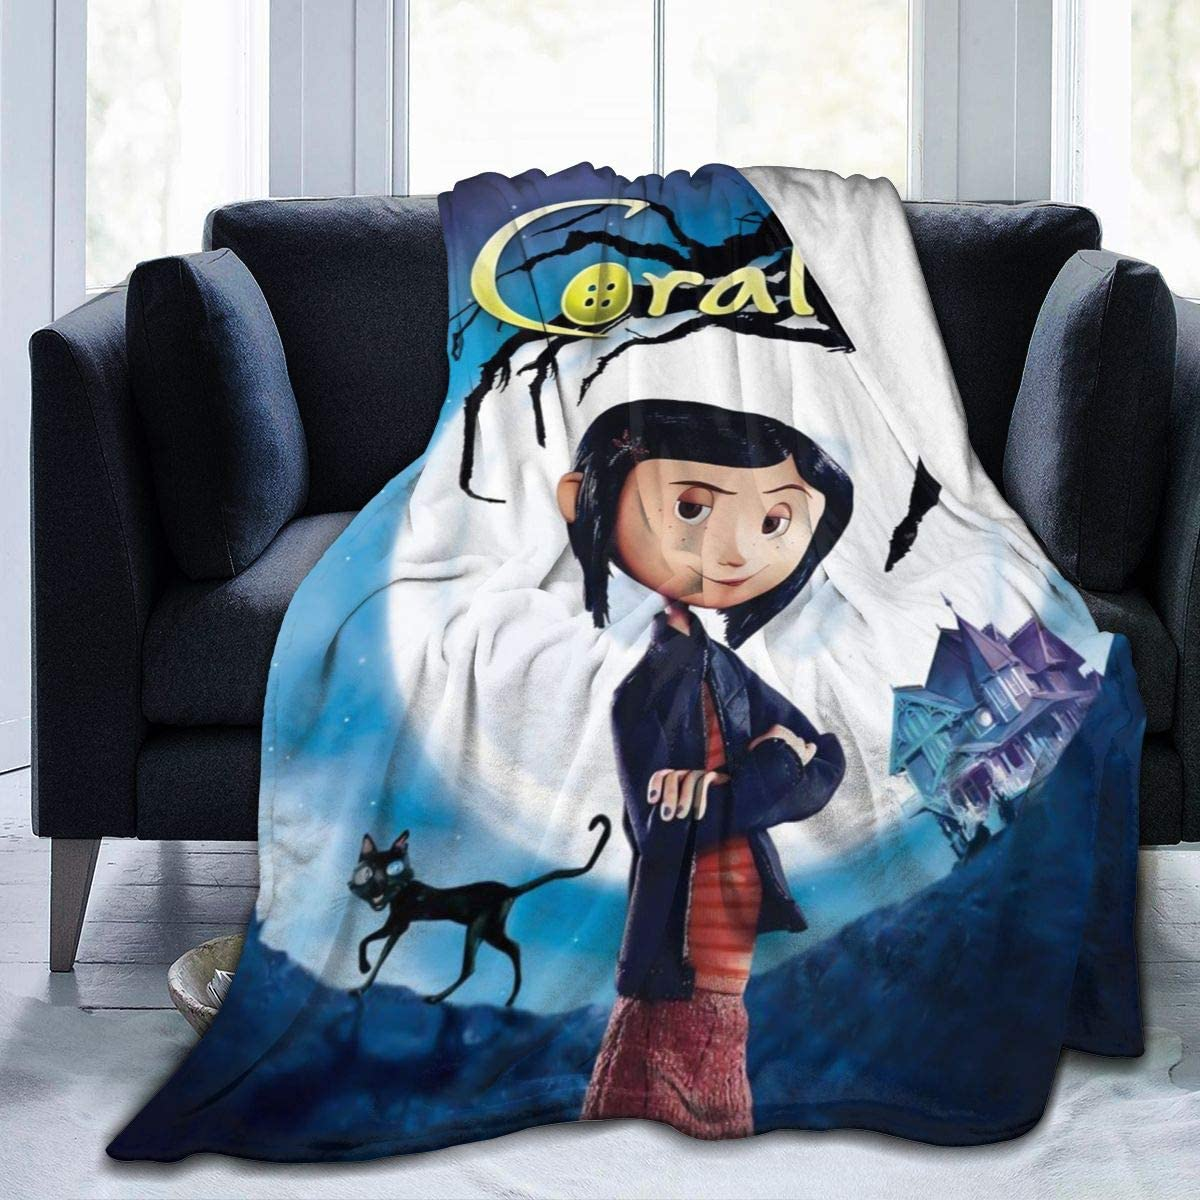 Amazon Com Luxury Fleece Bed Blankets Coraline And The Secret Door Halloween Poster Christmas Throw Blankets Washable Ultra Cozy Large Blanket For Girls Living Room Picnic Home Kitchen